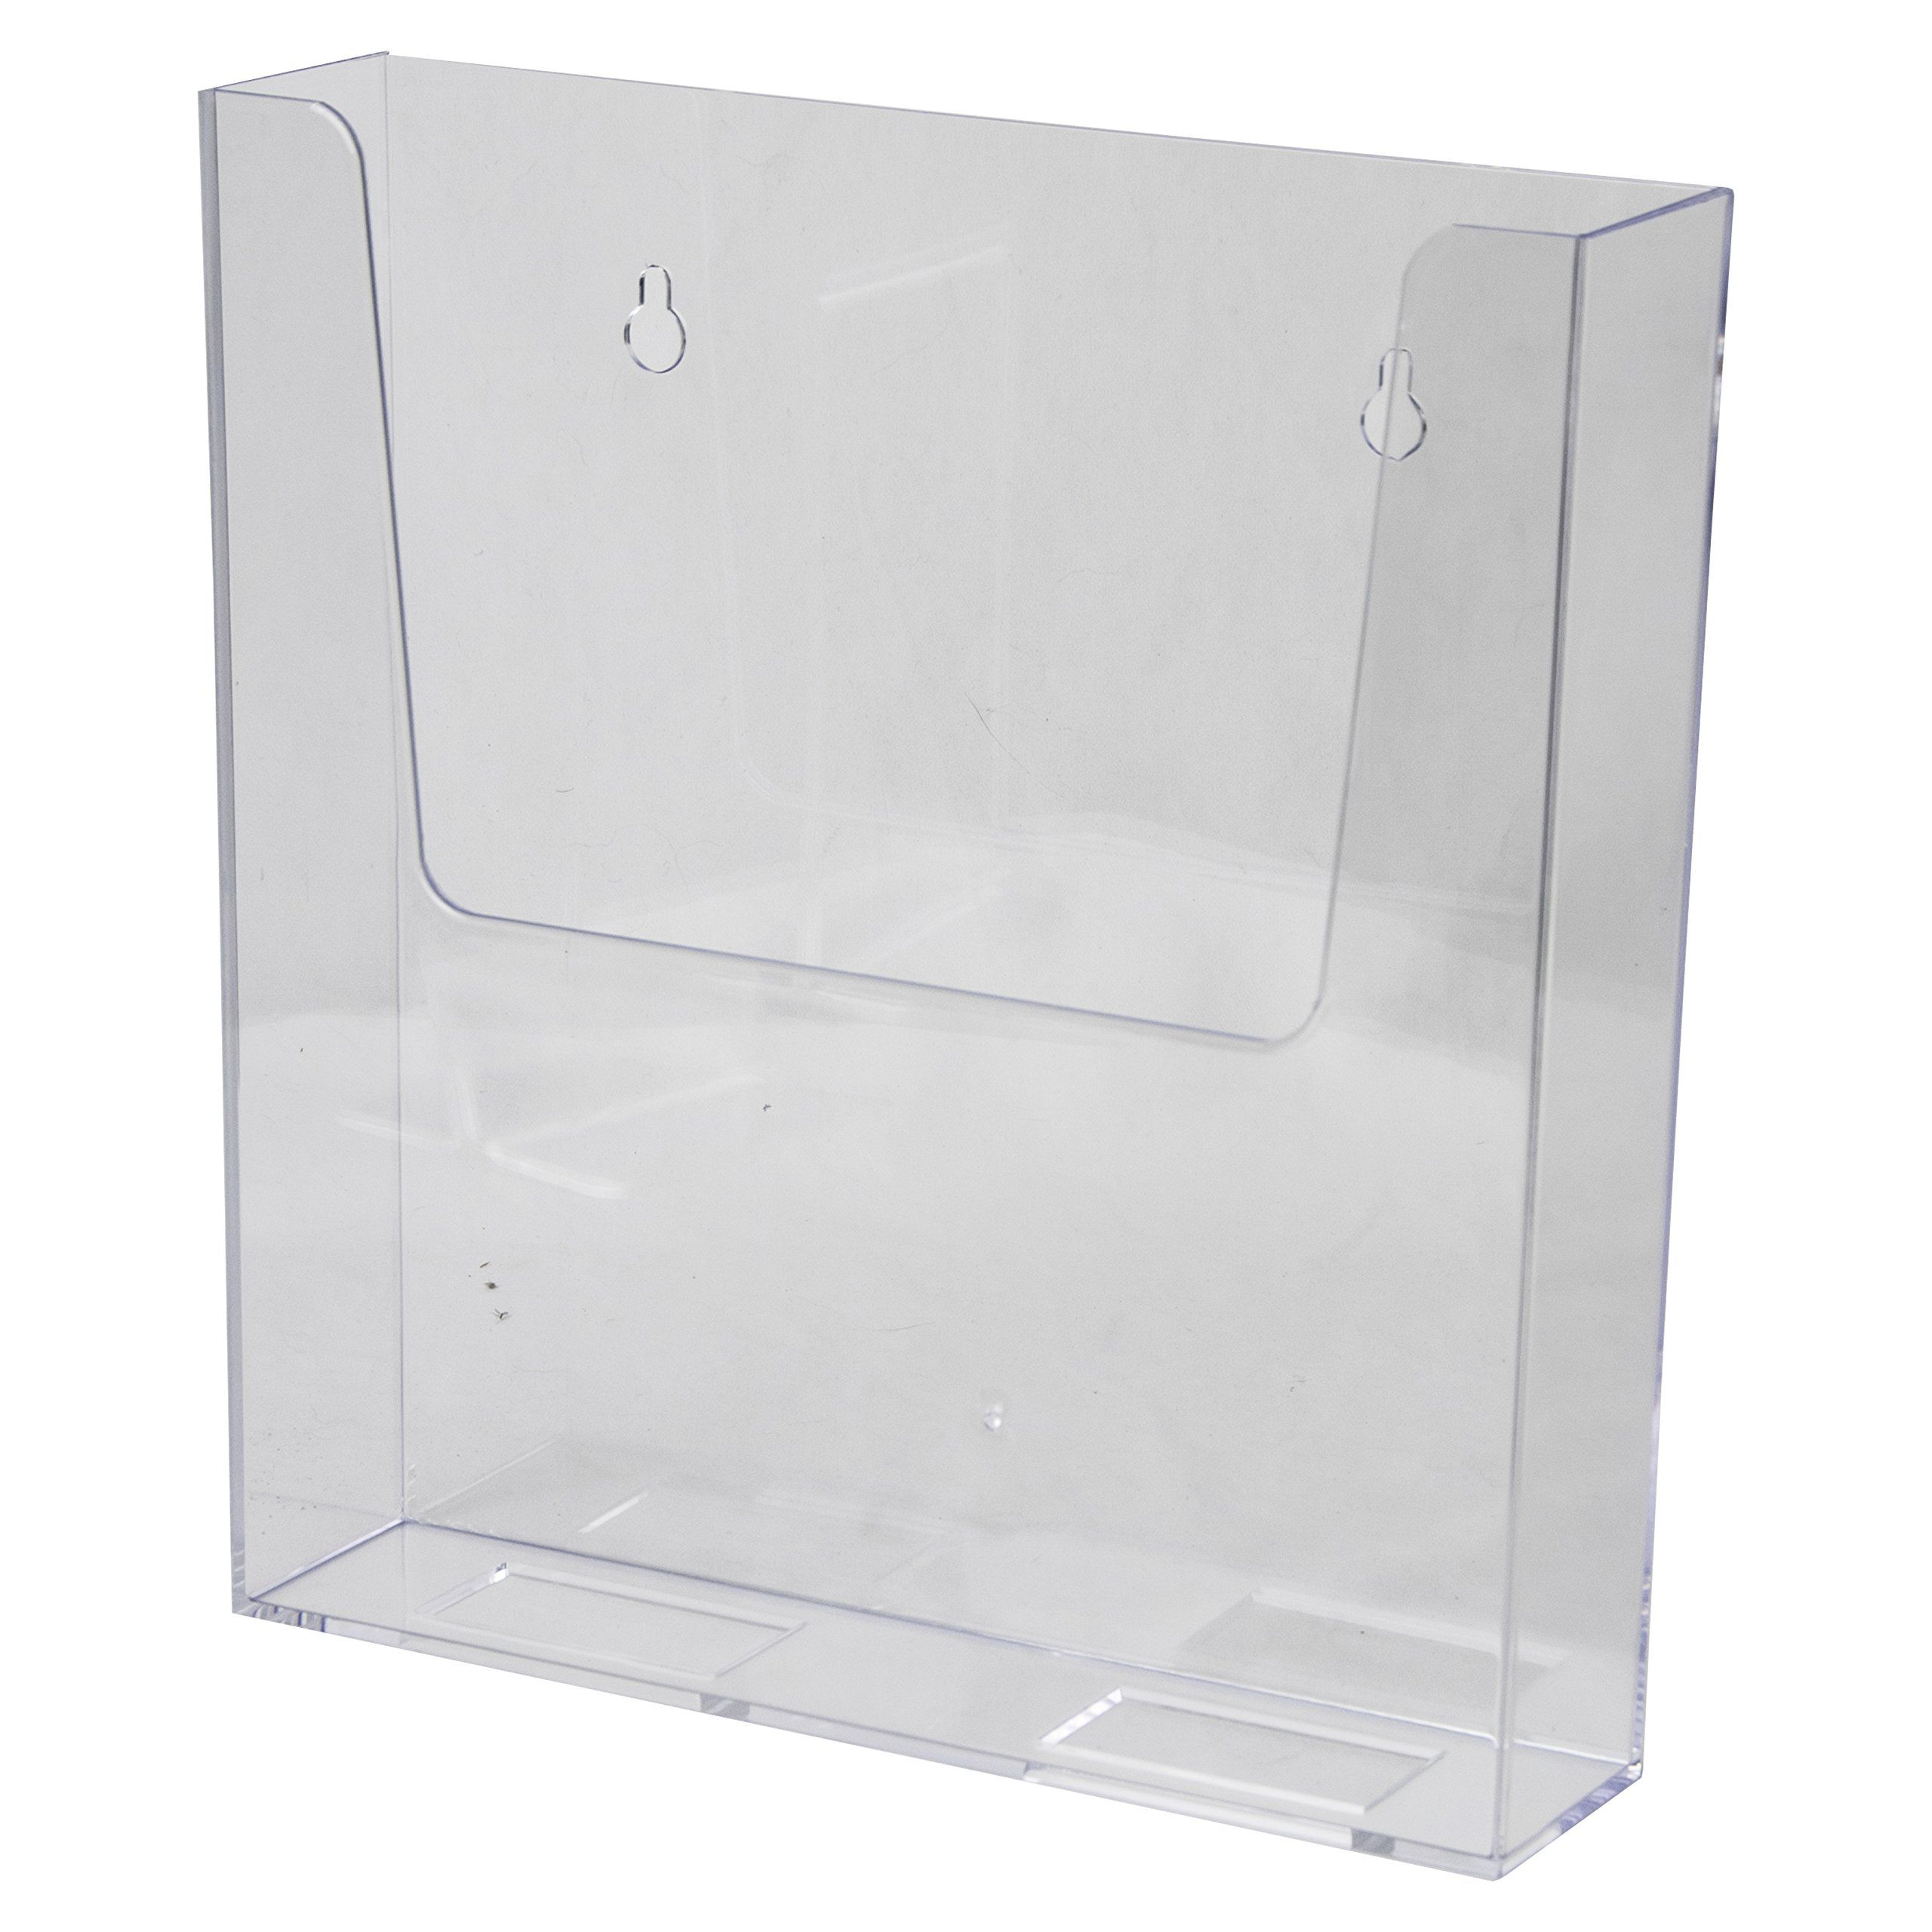 Clearad Lhwm161 Clear Acrylic Adhesive Or Wall Mount Brochure Holder 8 5x11 Plastic Flyer Display Brochure Holders Plastic Hanging Work Space Organization